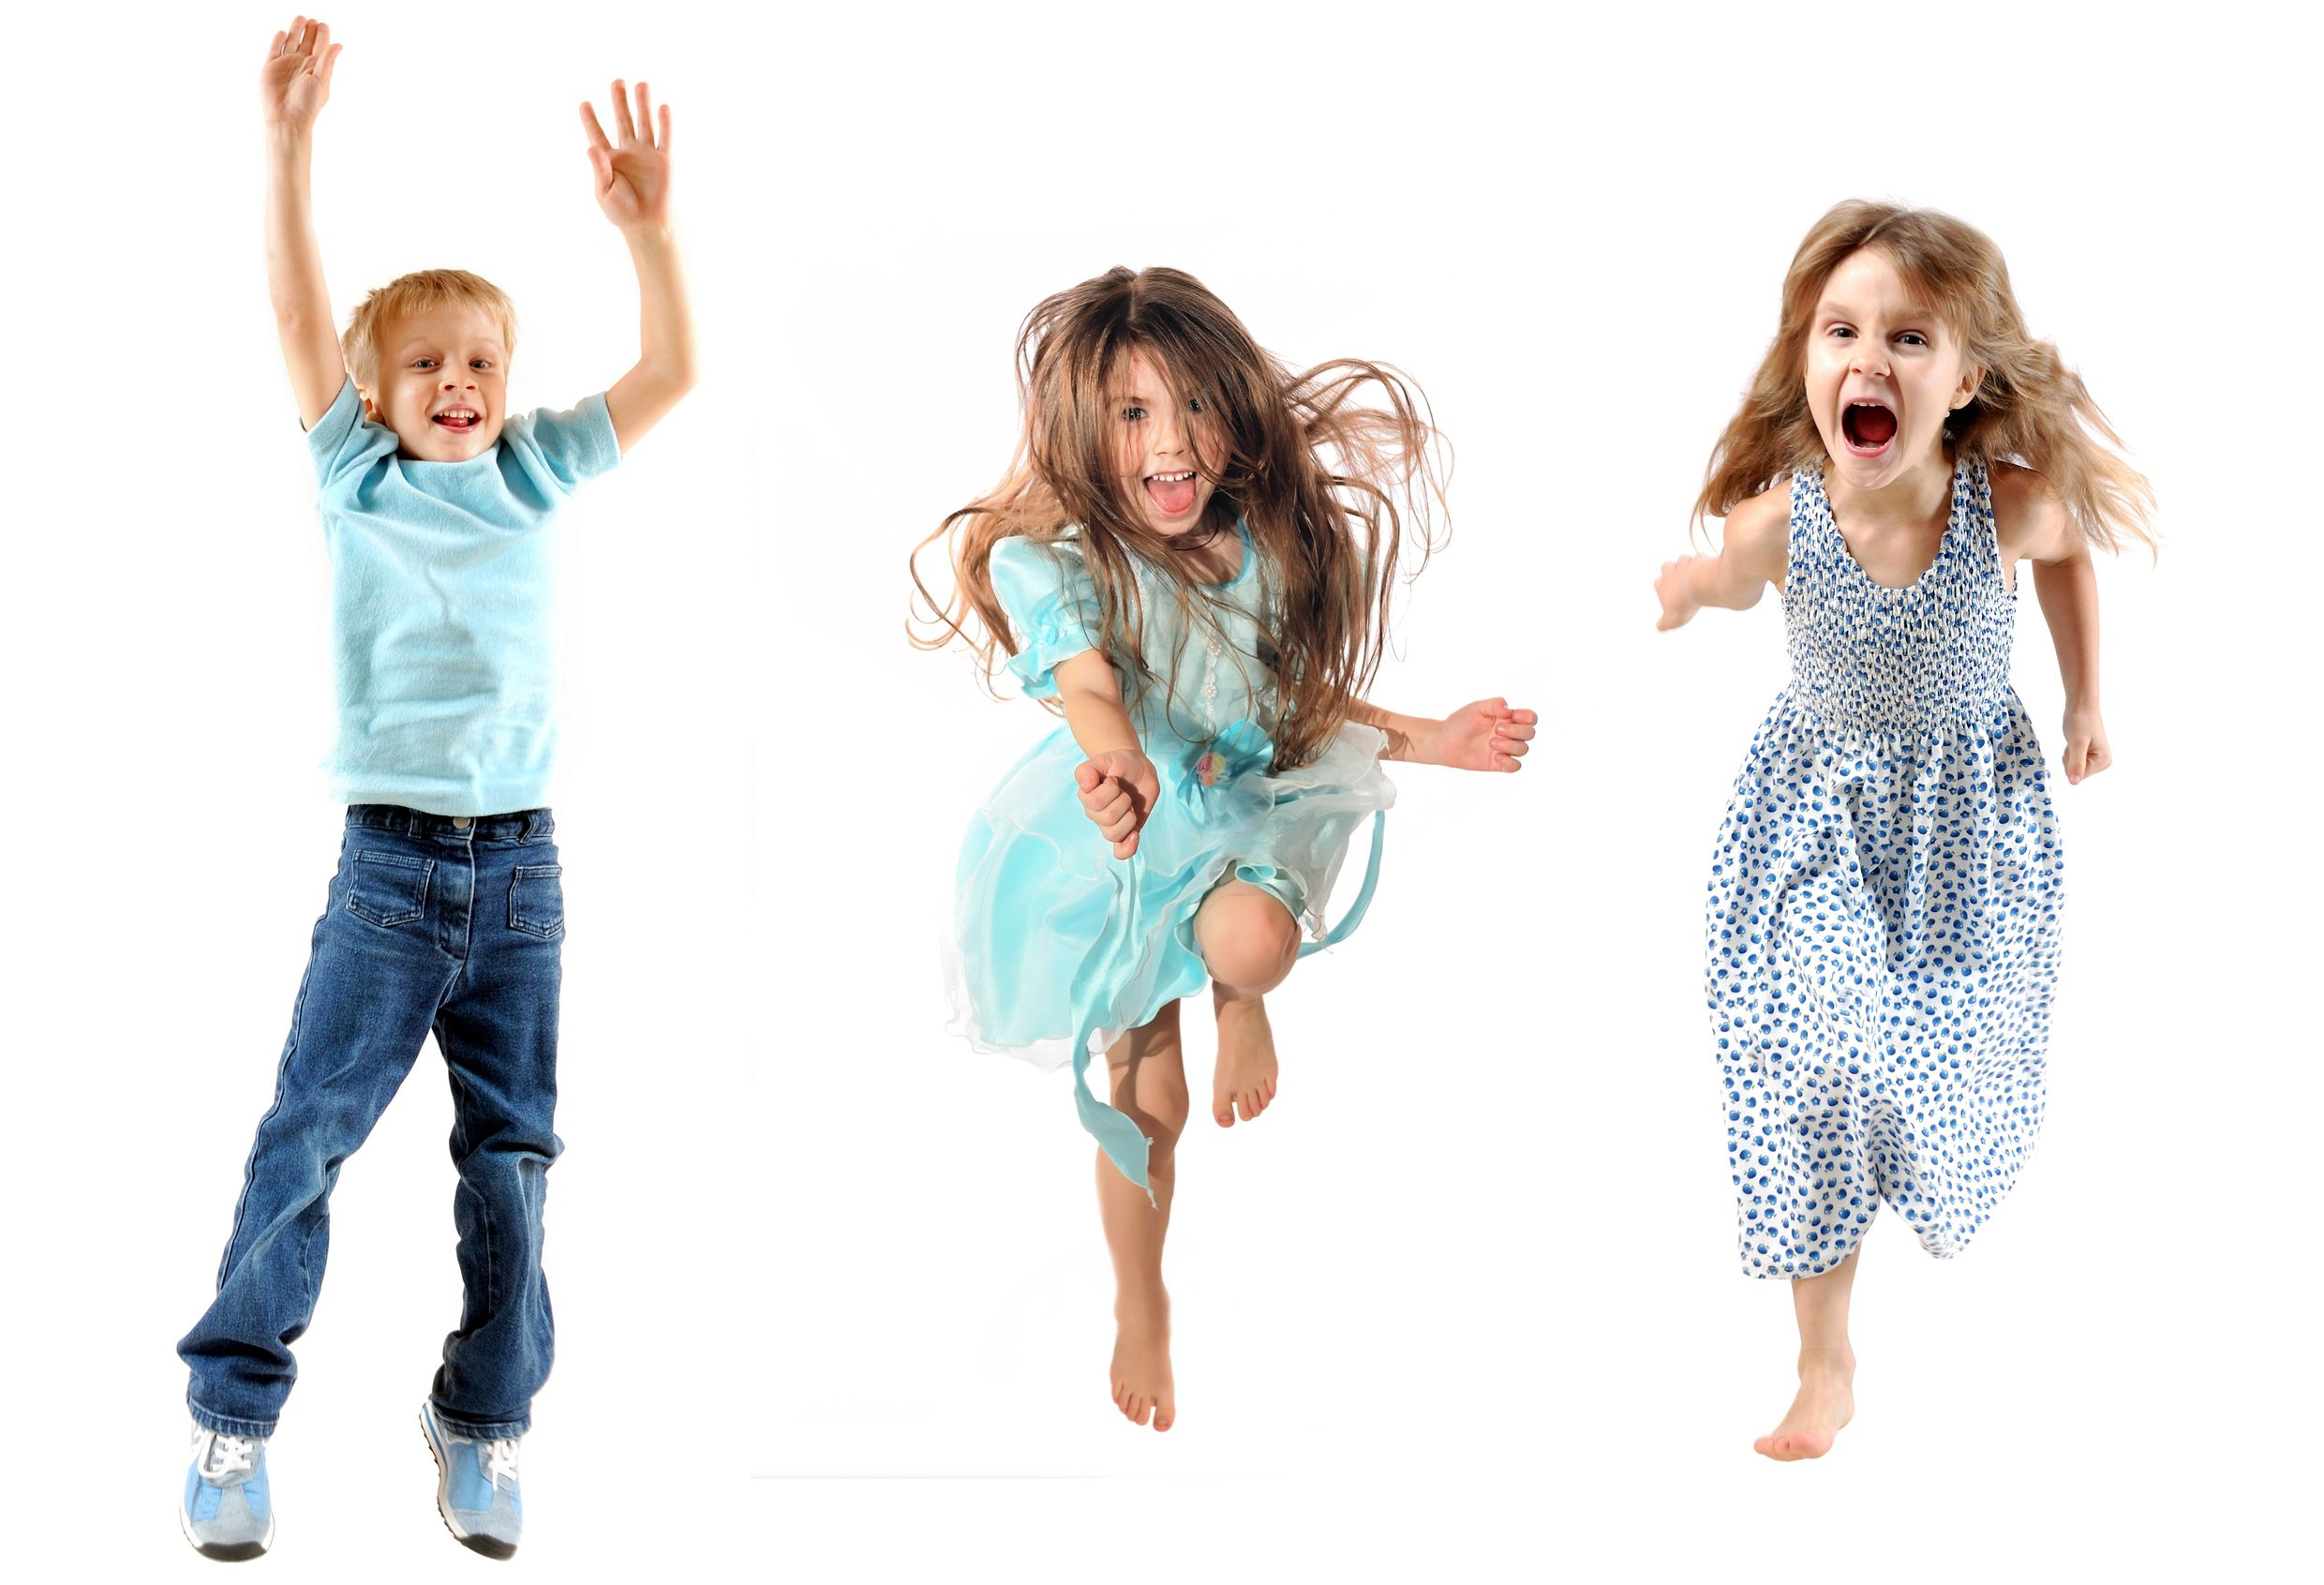 Creative Movement Games that Inspire Kids to be Brave and Kind